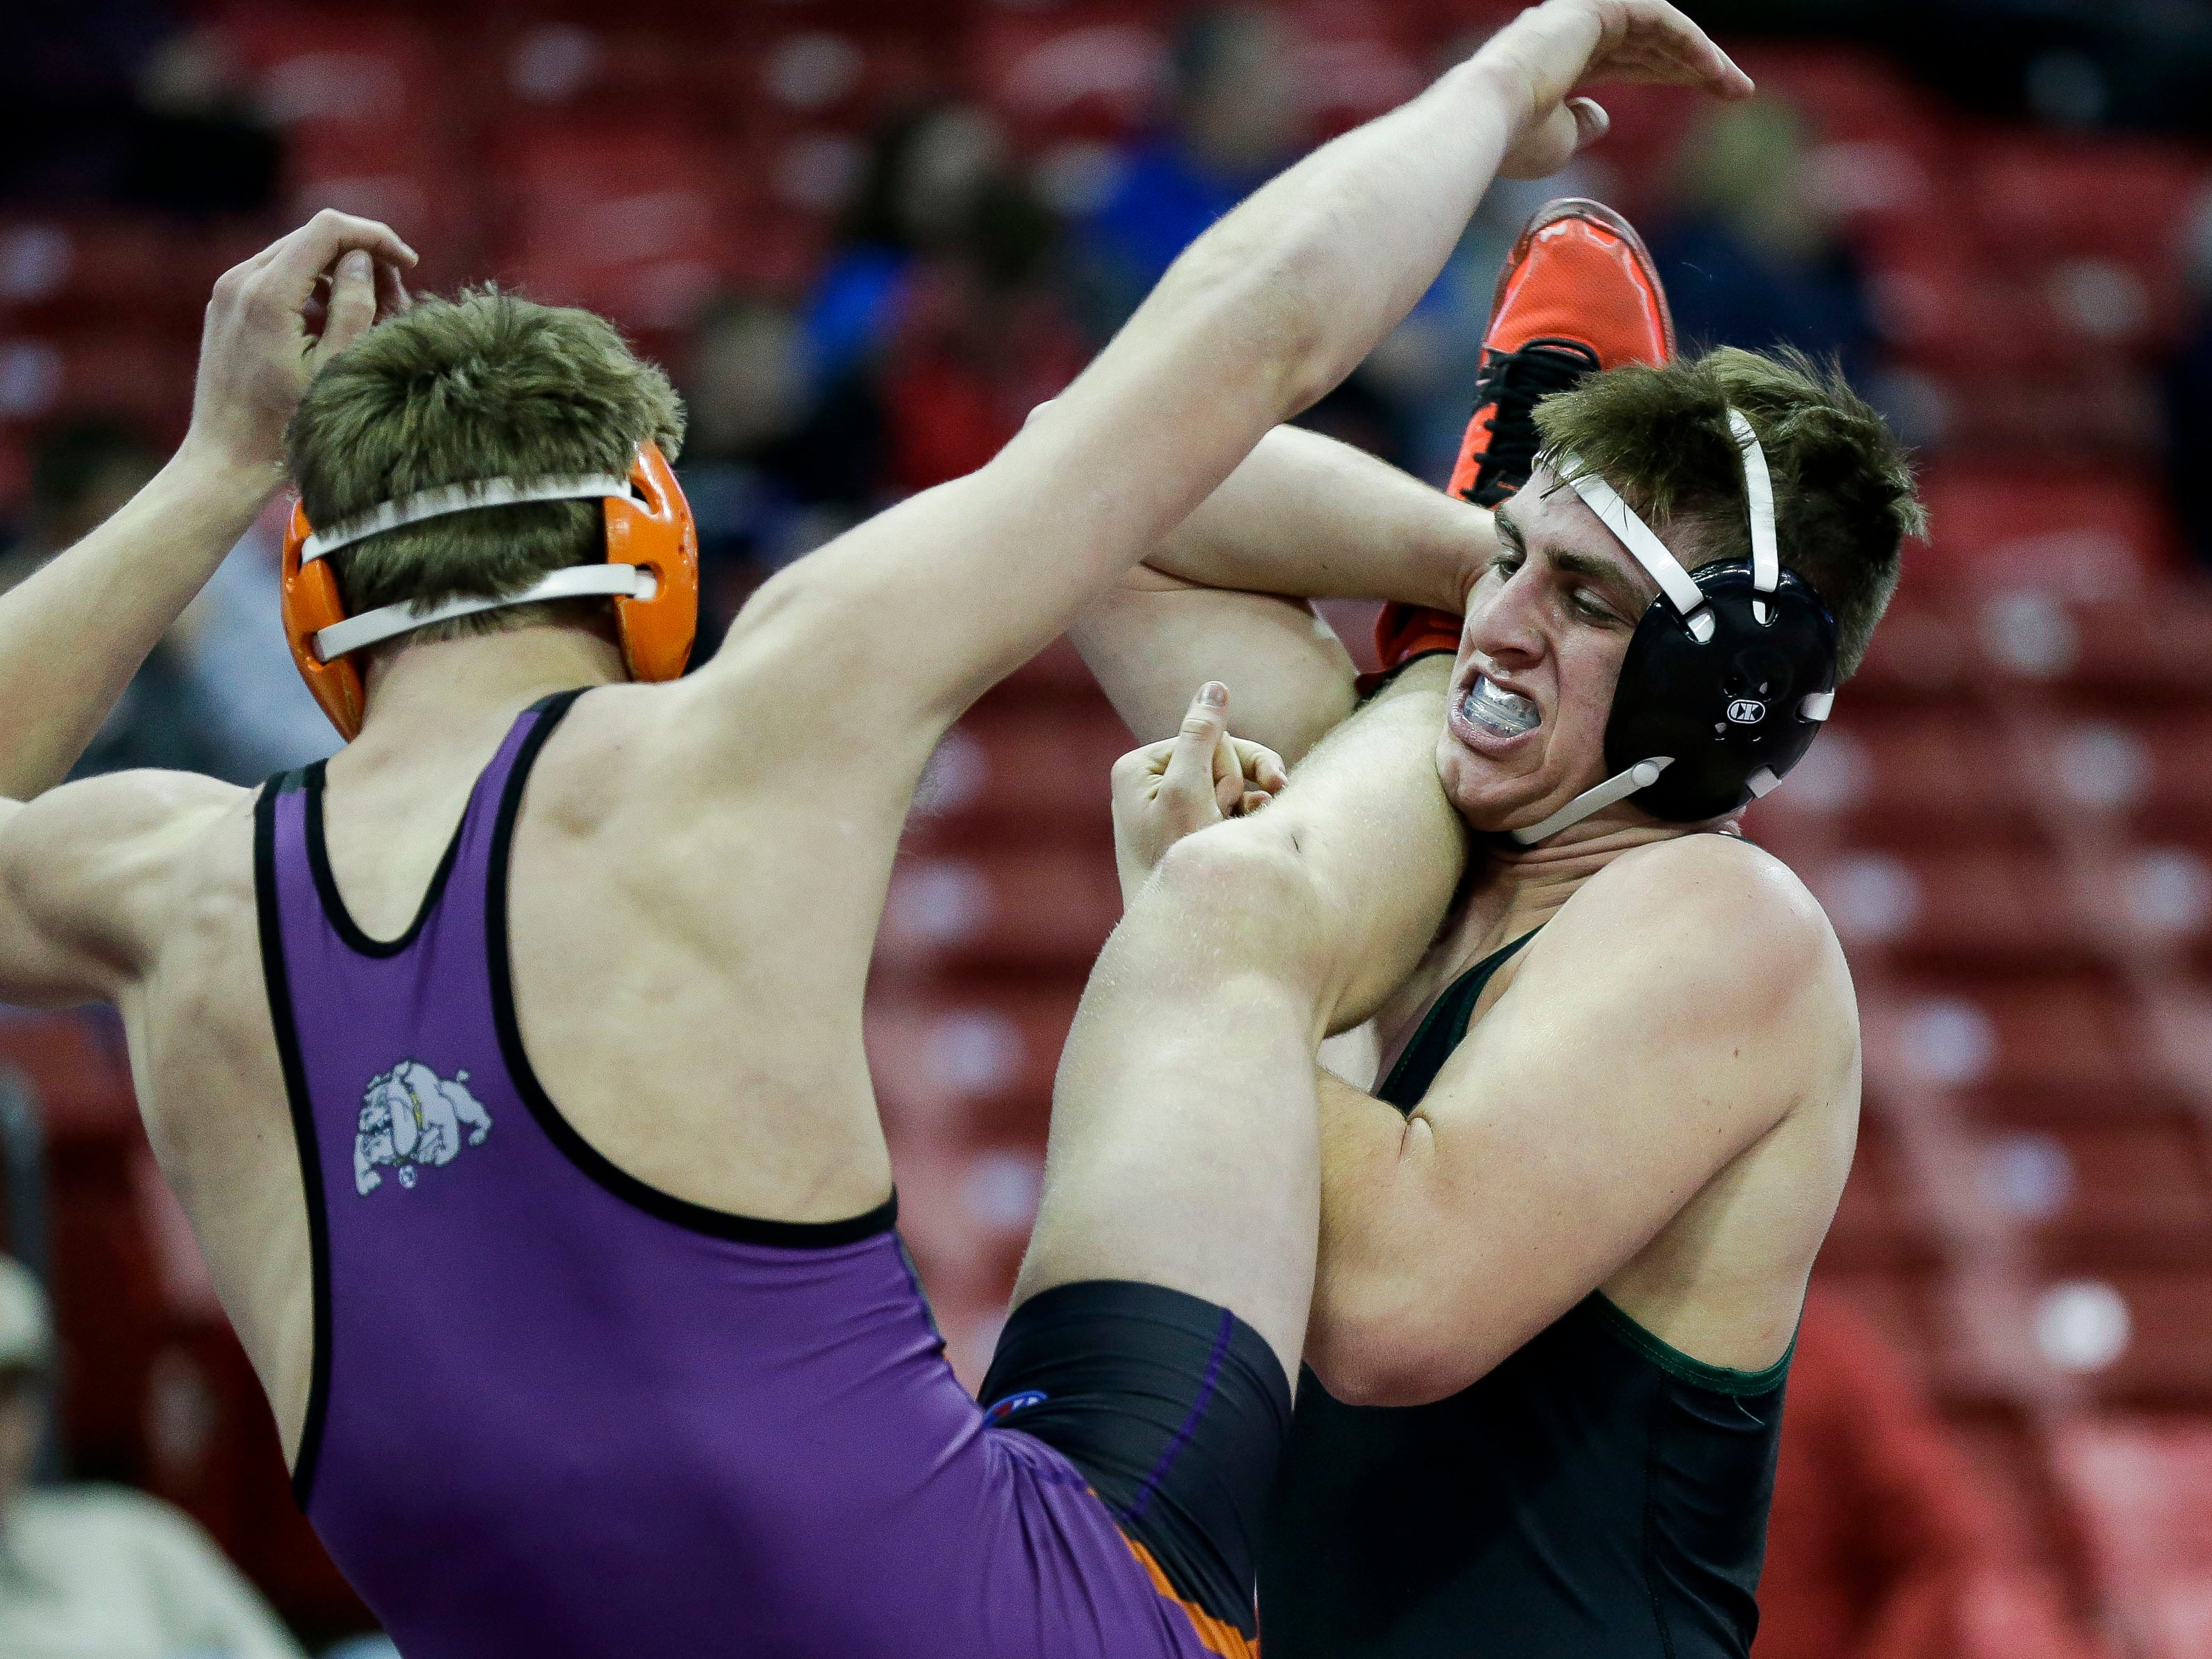 Berlin's C.J. Kurczek works to take down C-W/PF's Justis Knutson in a Division 2 195-pound preliminary match during the WIAA state wrestling tournament on Thursday, February 21, 2019, at the Kohl Center in Madison, Wis.